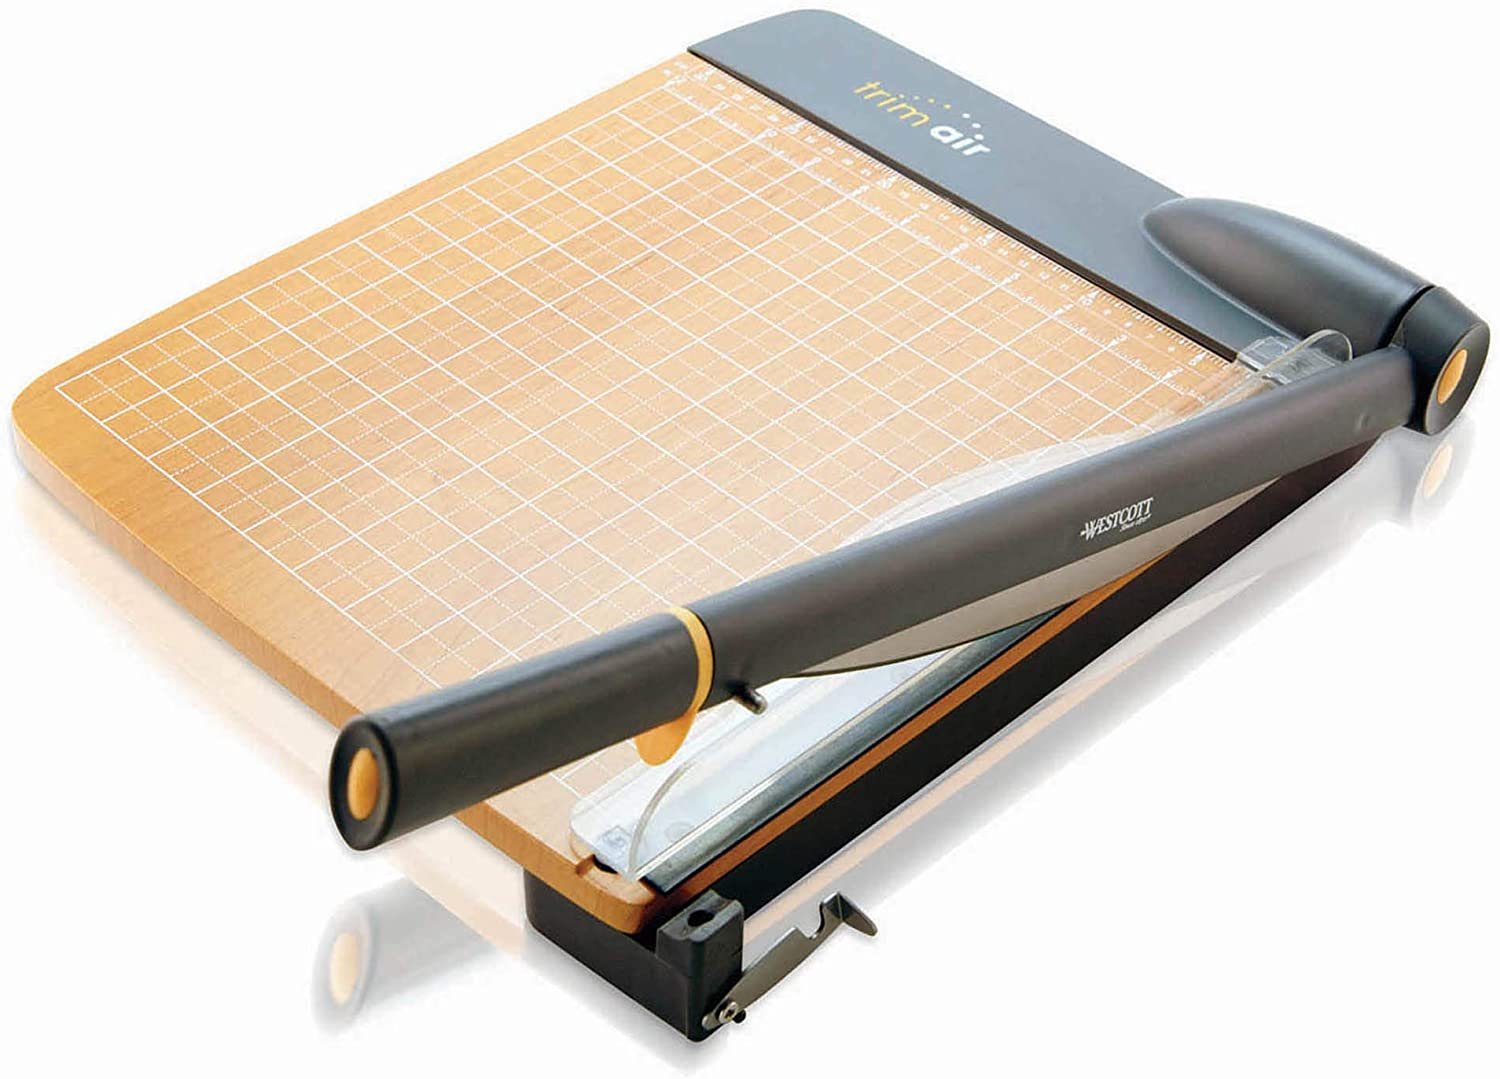 Westcott ACM15106 TrimAir Titanium Wood Guillotine Paper Trimmer with Anti-Microbial Protection, 12